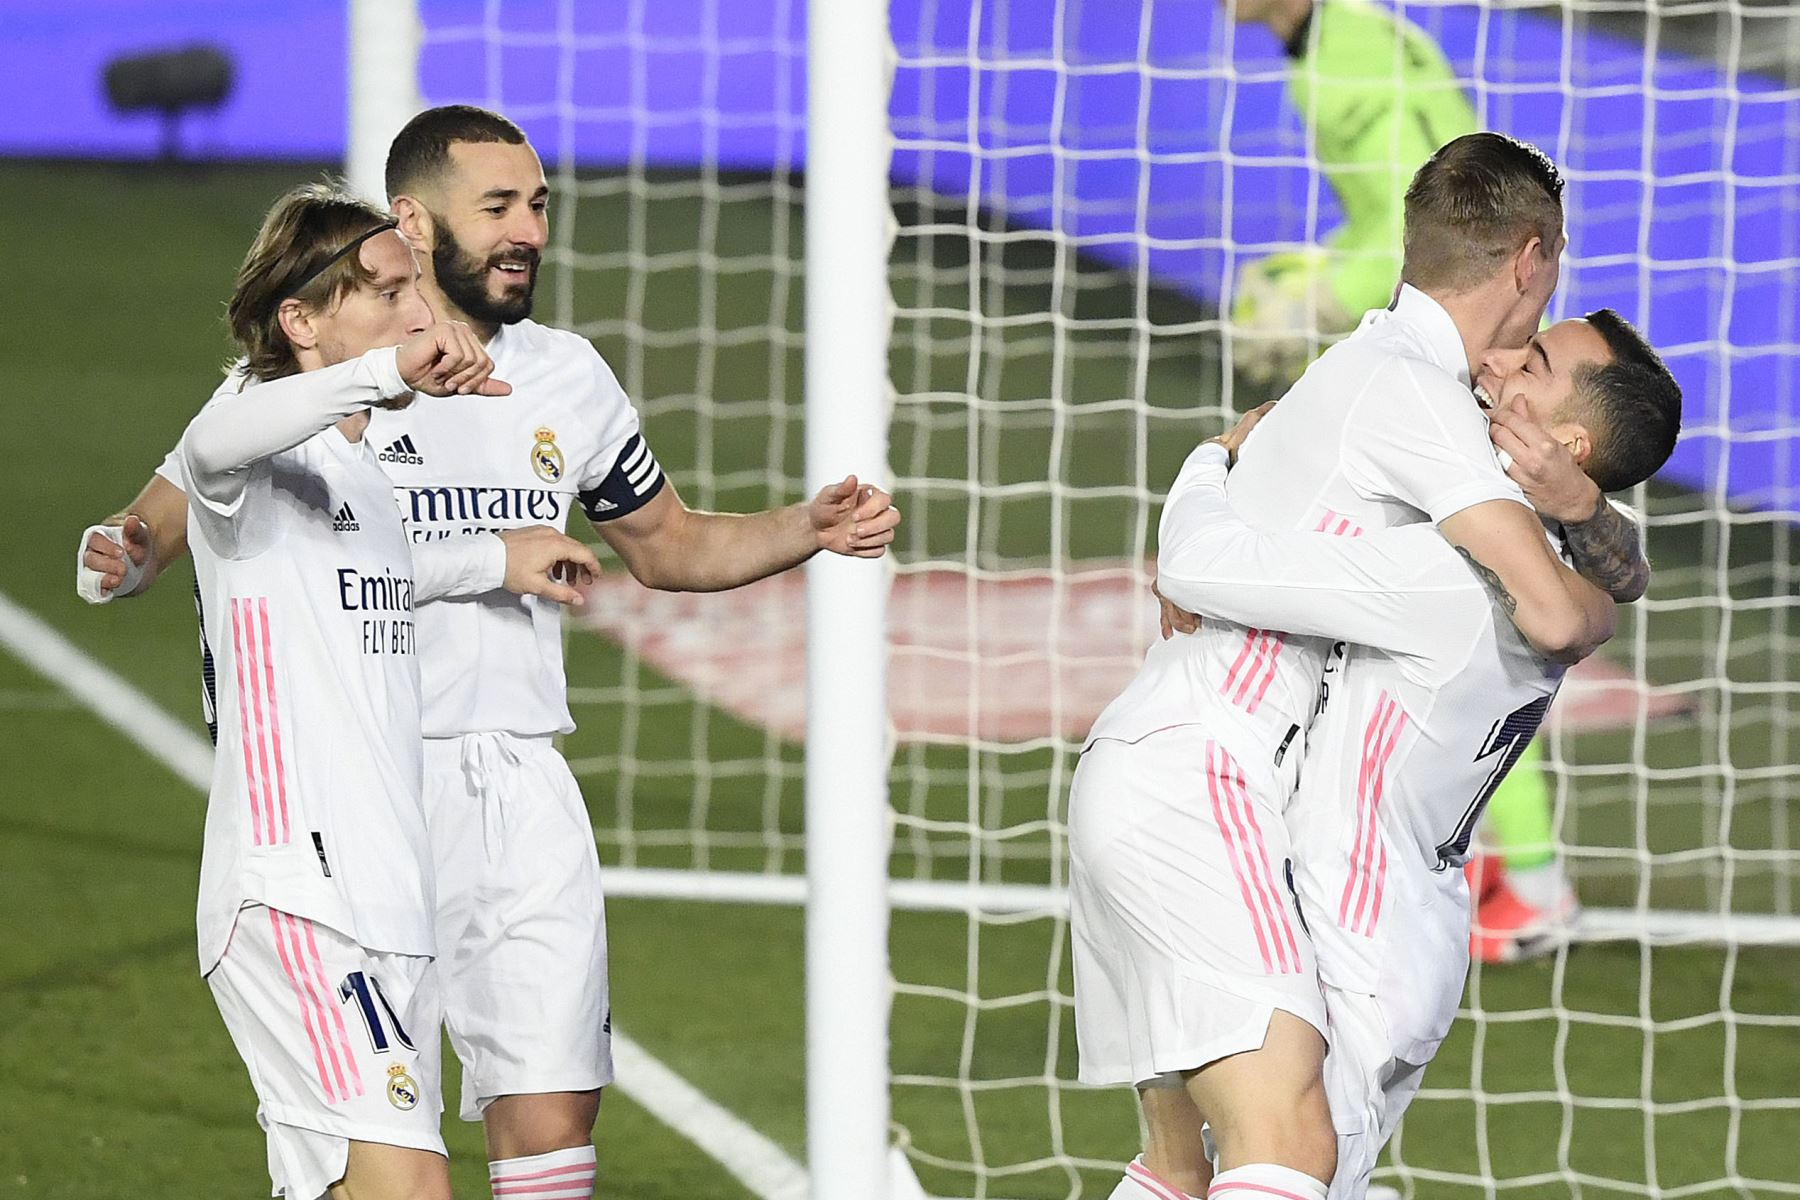 real-madrid-inicia-hoy-la-defensa-de-la-supercopa-de-espana